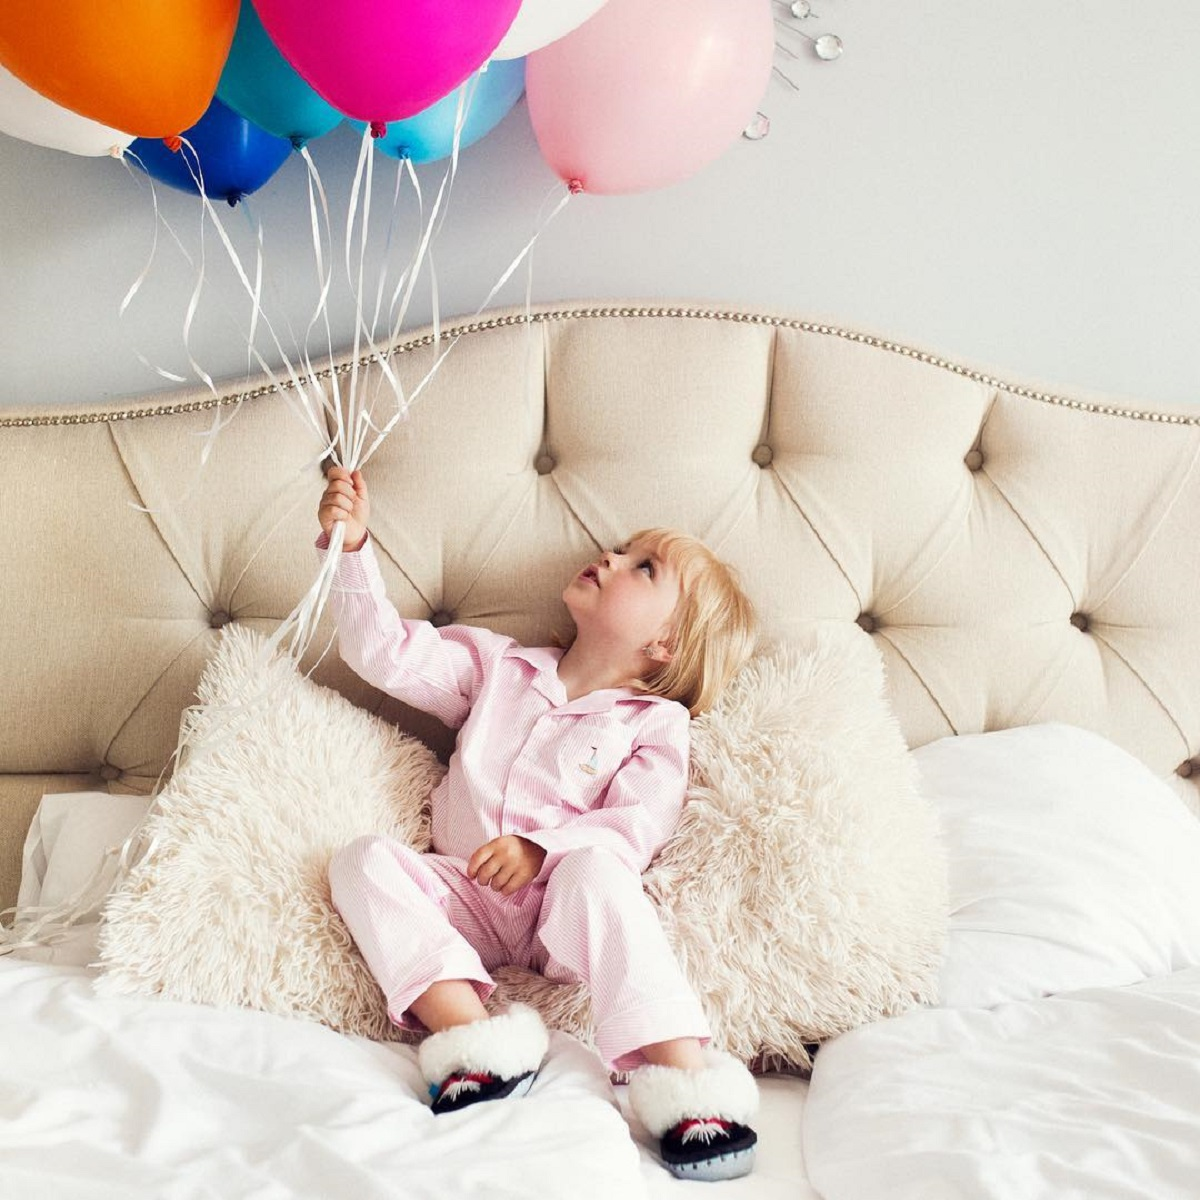 Little girl holding balloons in king sized bed